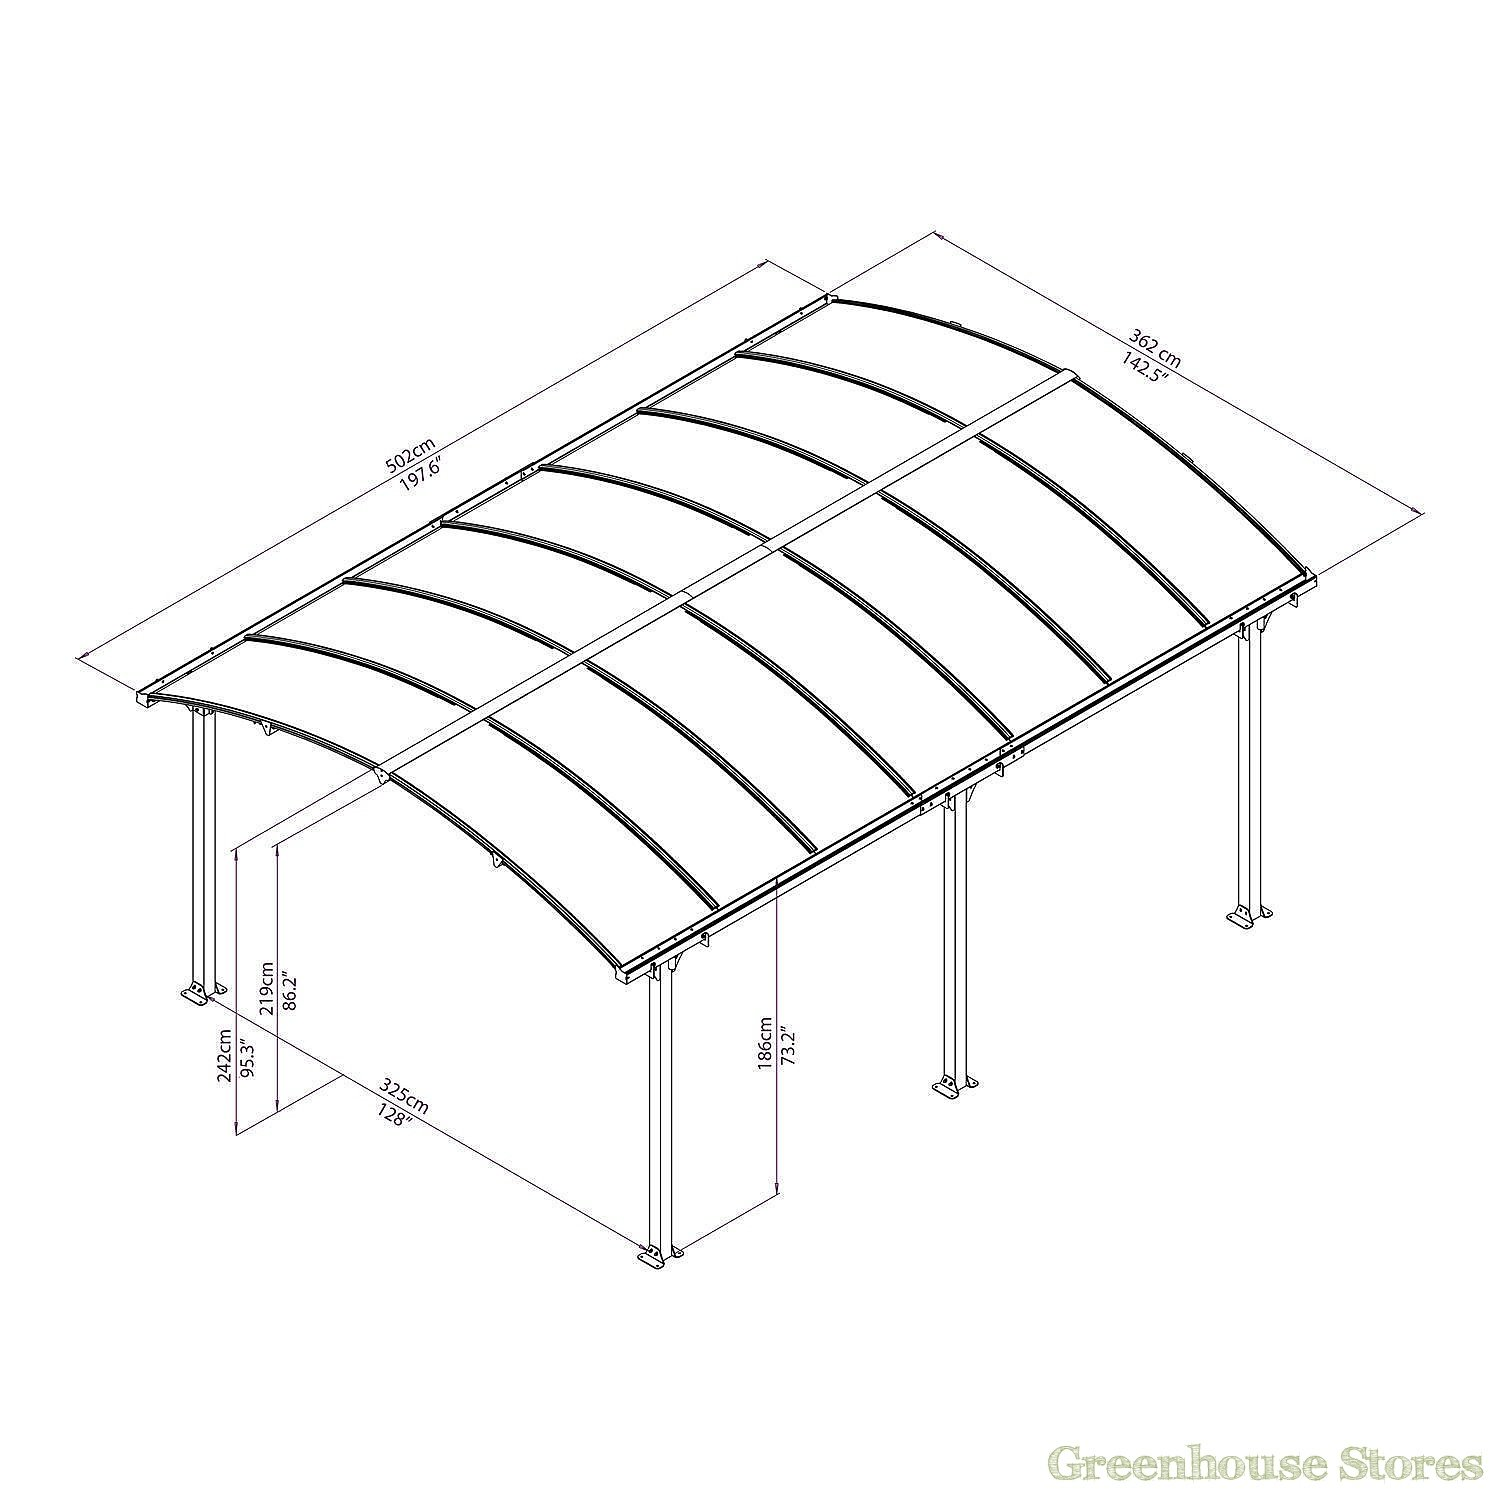 Vanguard 5000 Free Standing Car Port: Palram Arcadia 5000 Carport